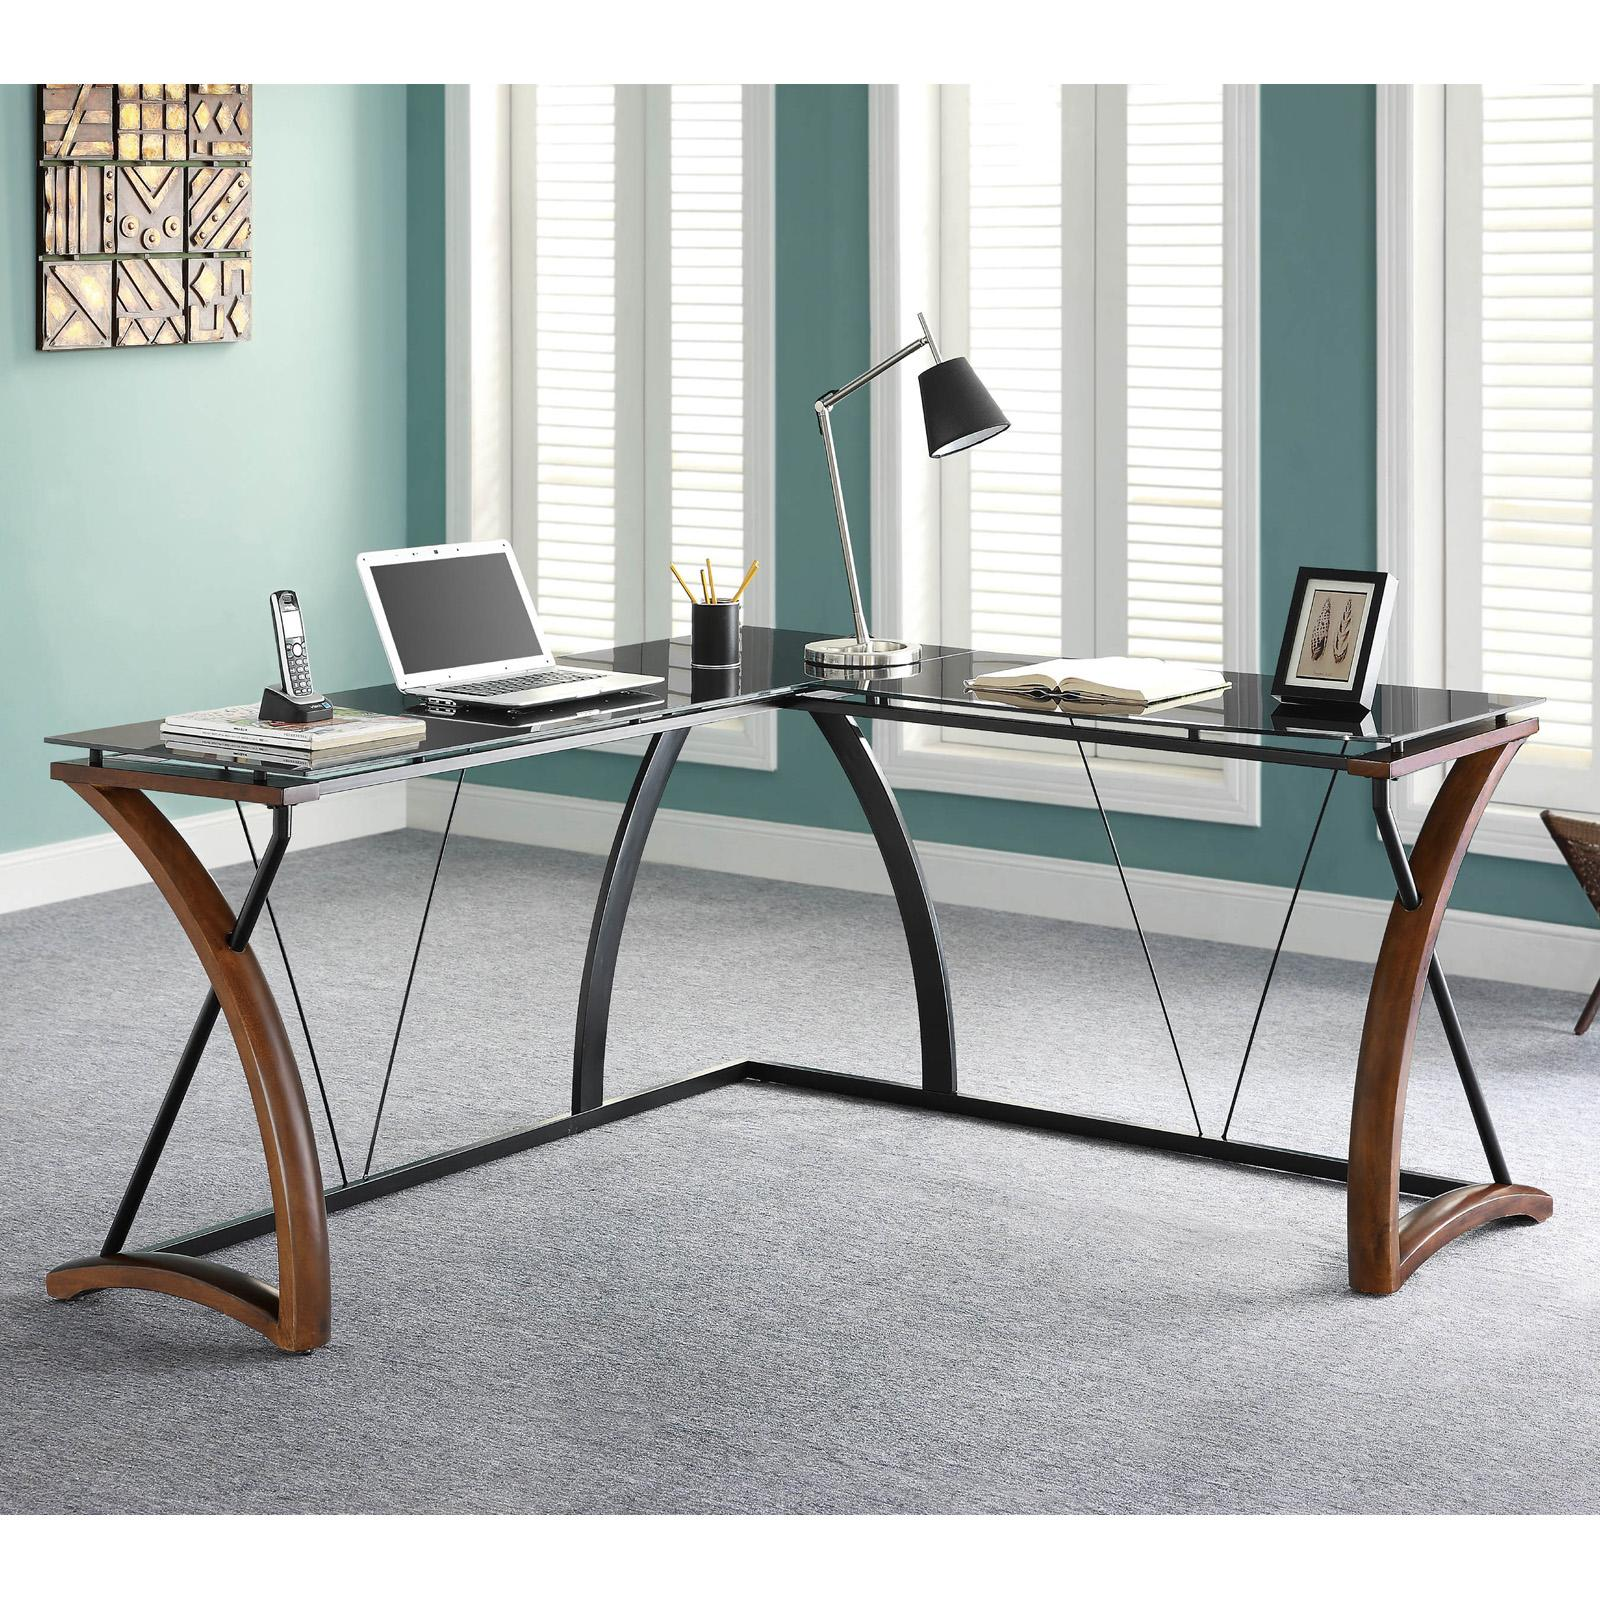 WHALEN Newport Wood and Glass L-Desk - JCS110605-D